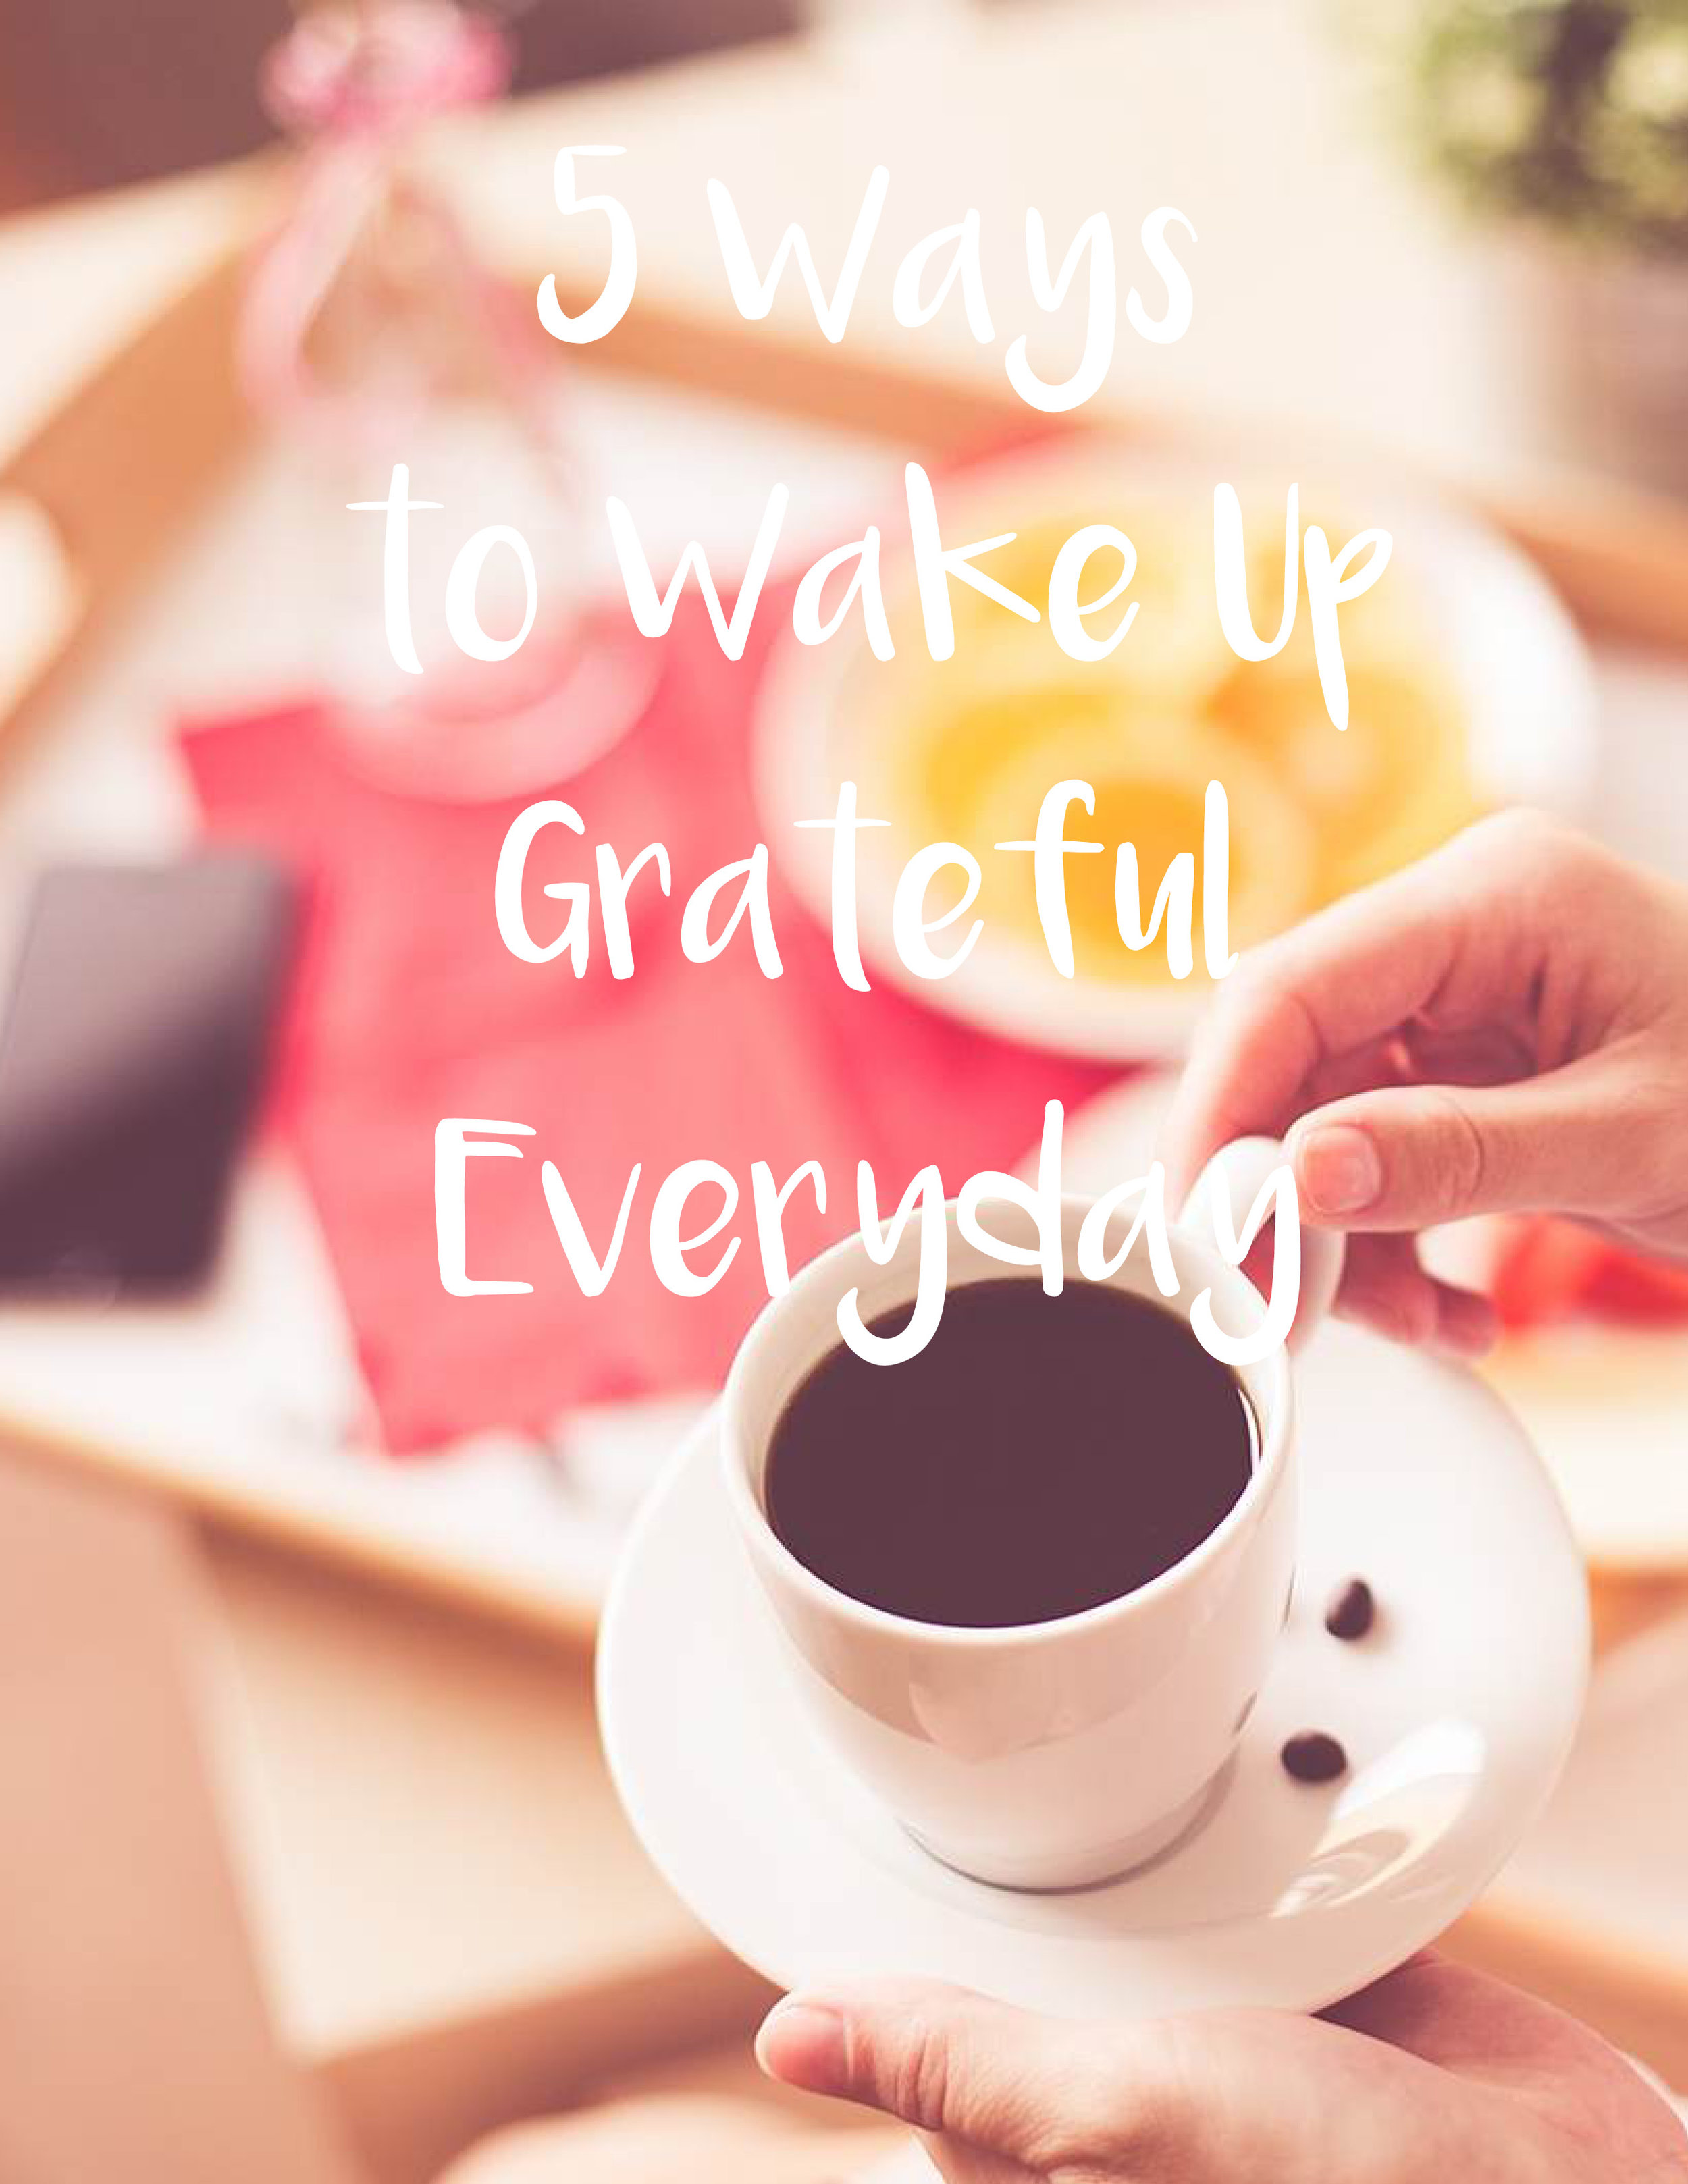 5 Ways to Wake Up Grateful Everyday